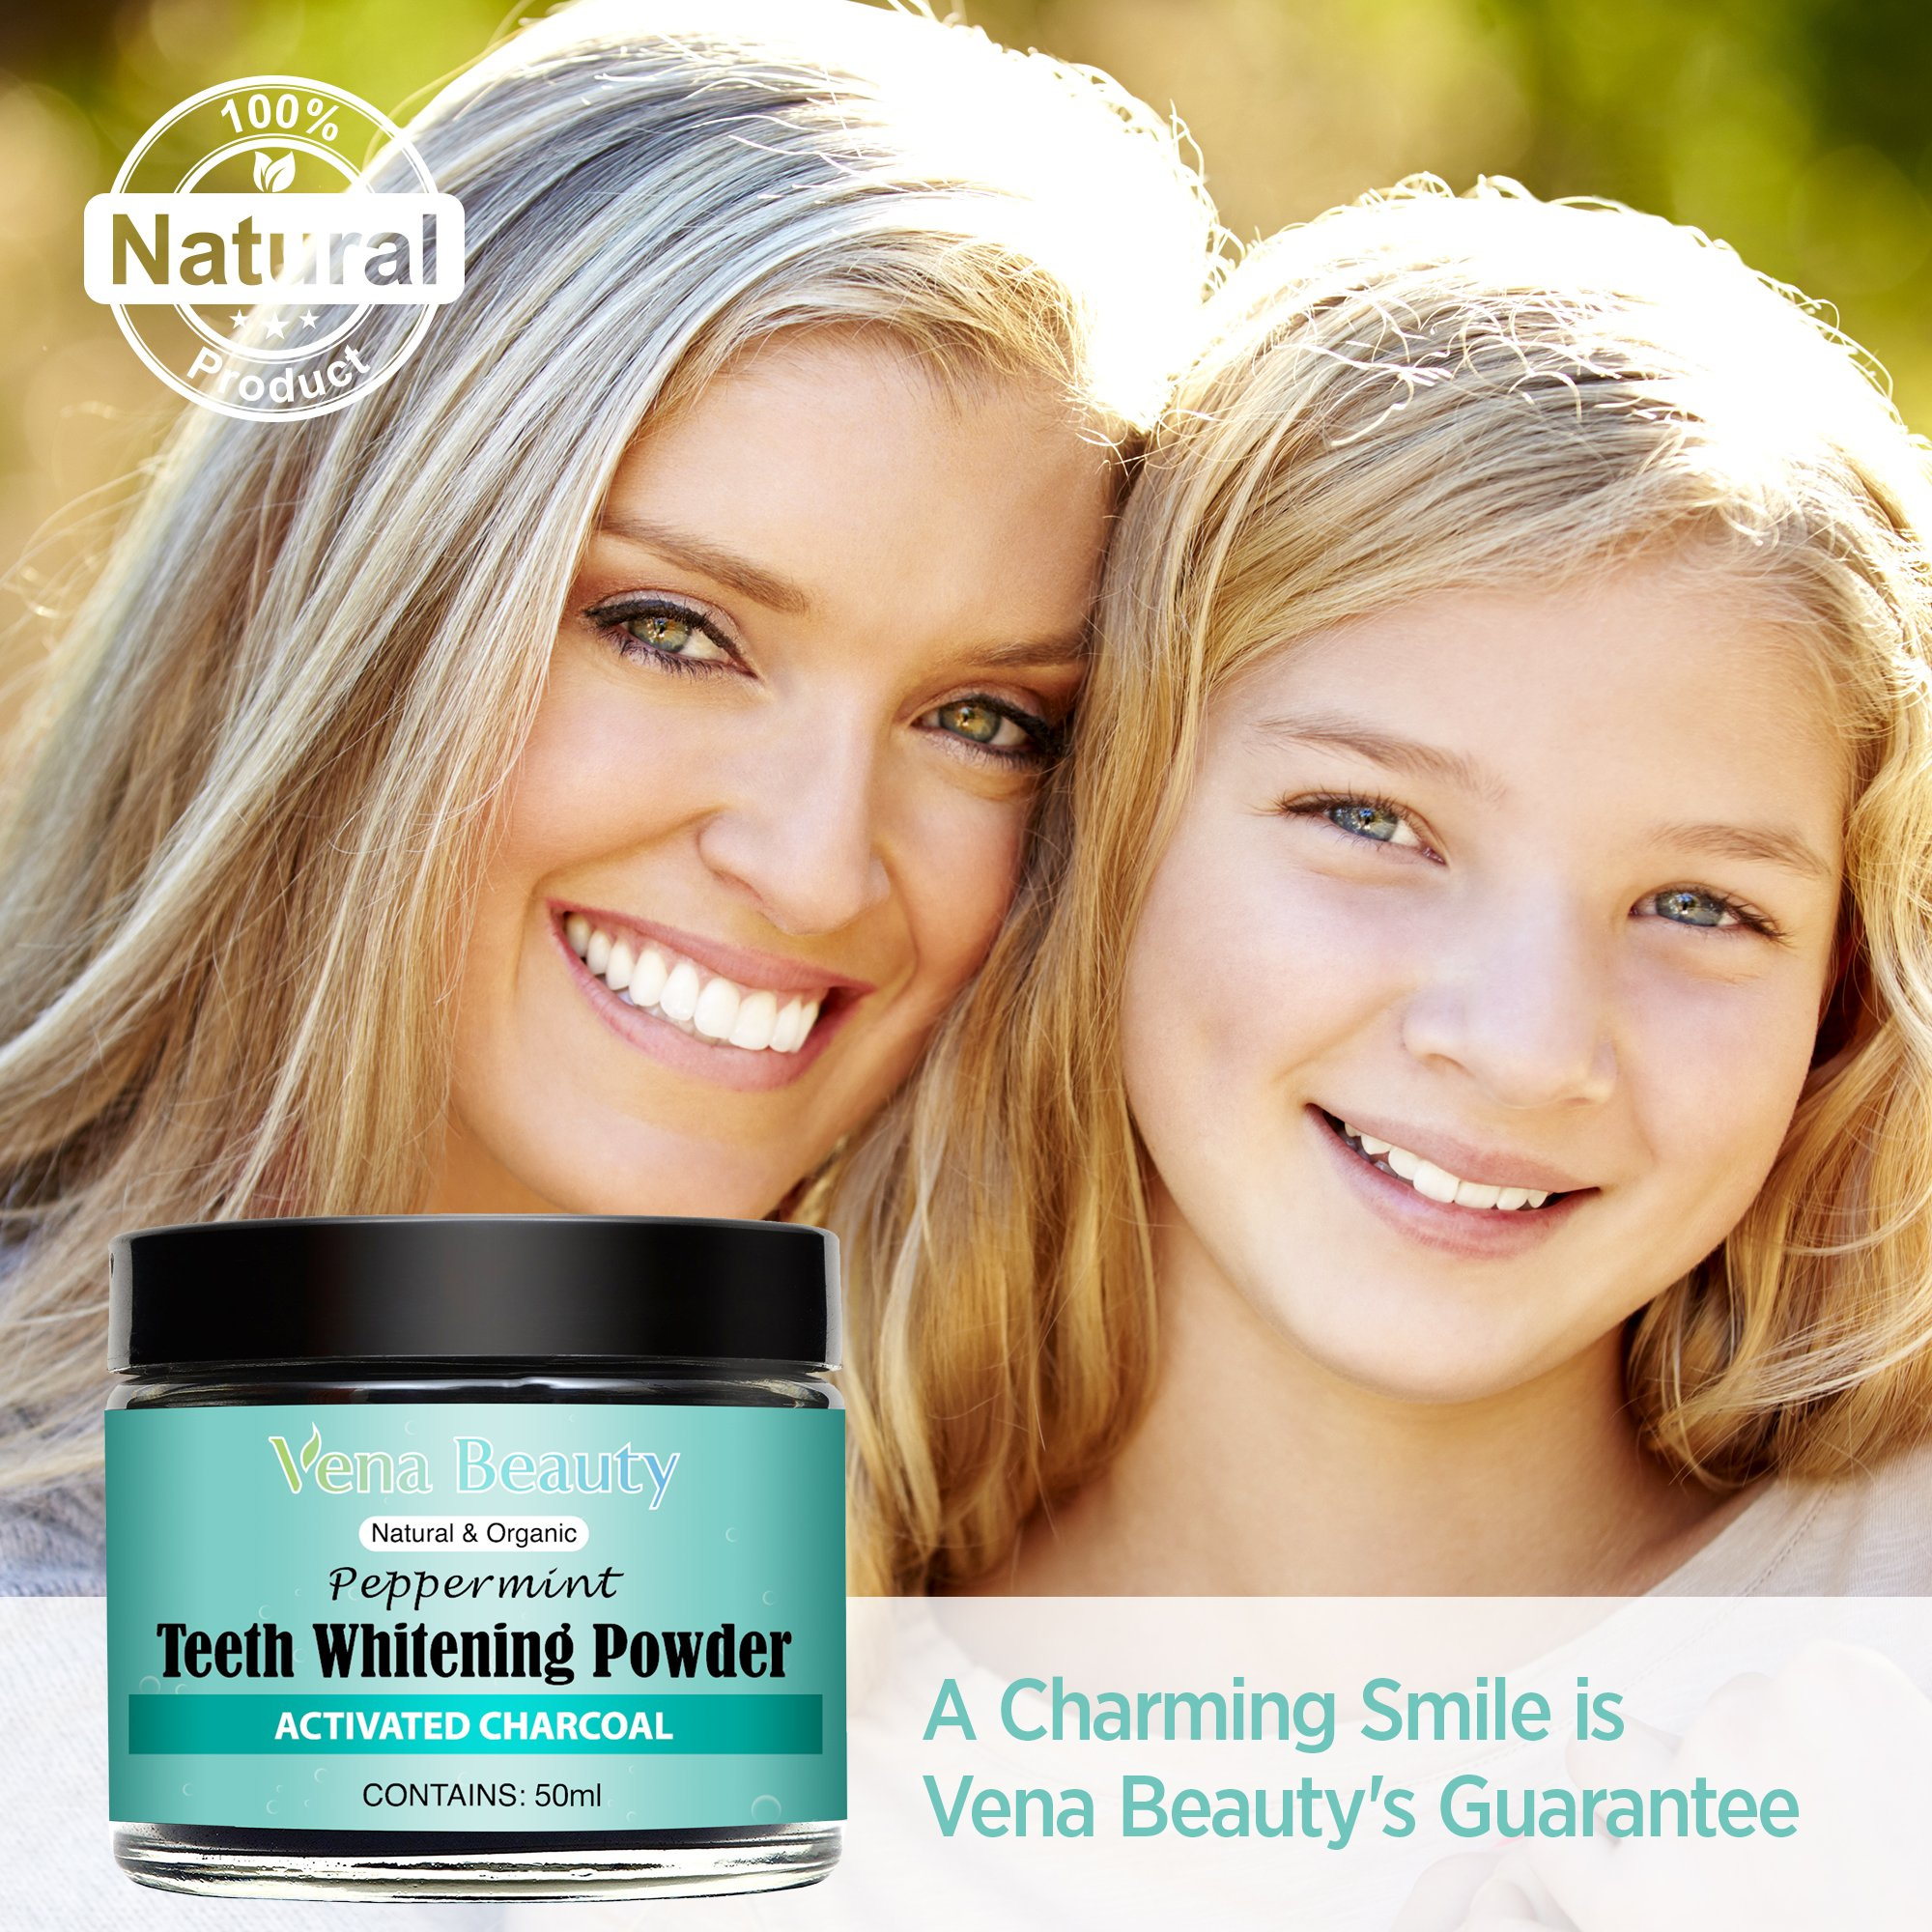 Natural Teeth Whitening Powder - Made with Organic Bamboo Activated Charcoal and Food Grade Formula –for Sensitive Teeth and Healthy Whitener (30ml) by Gemmaz (Image #3)